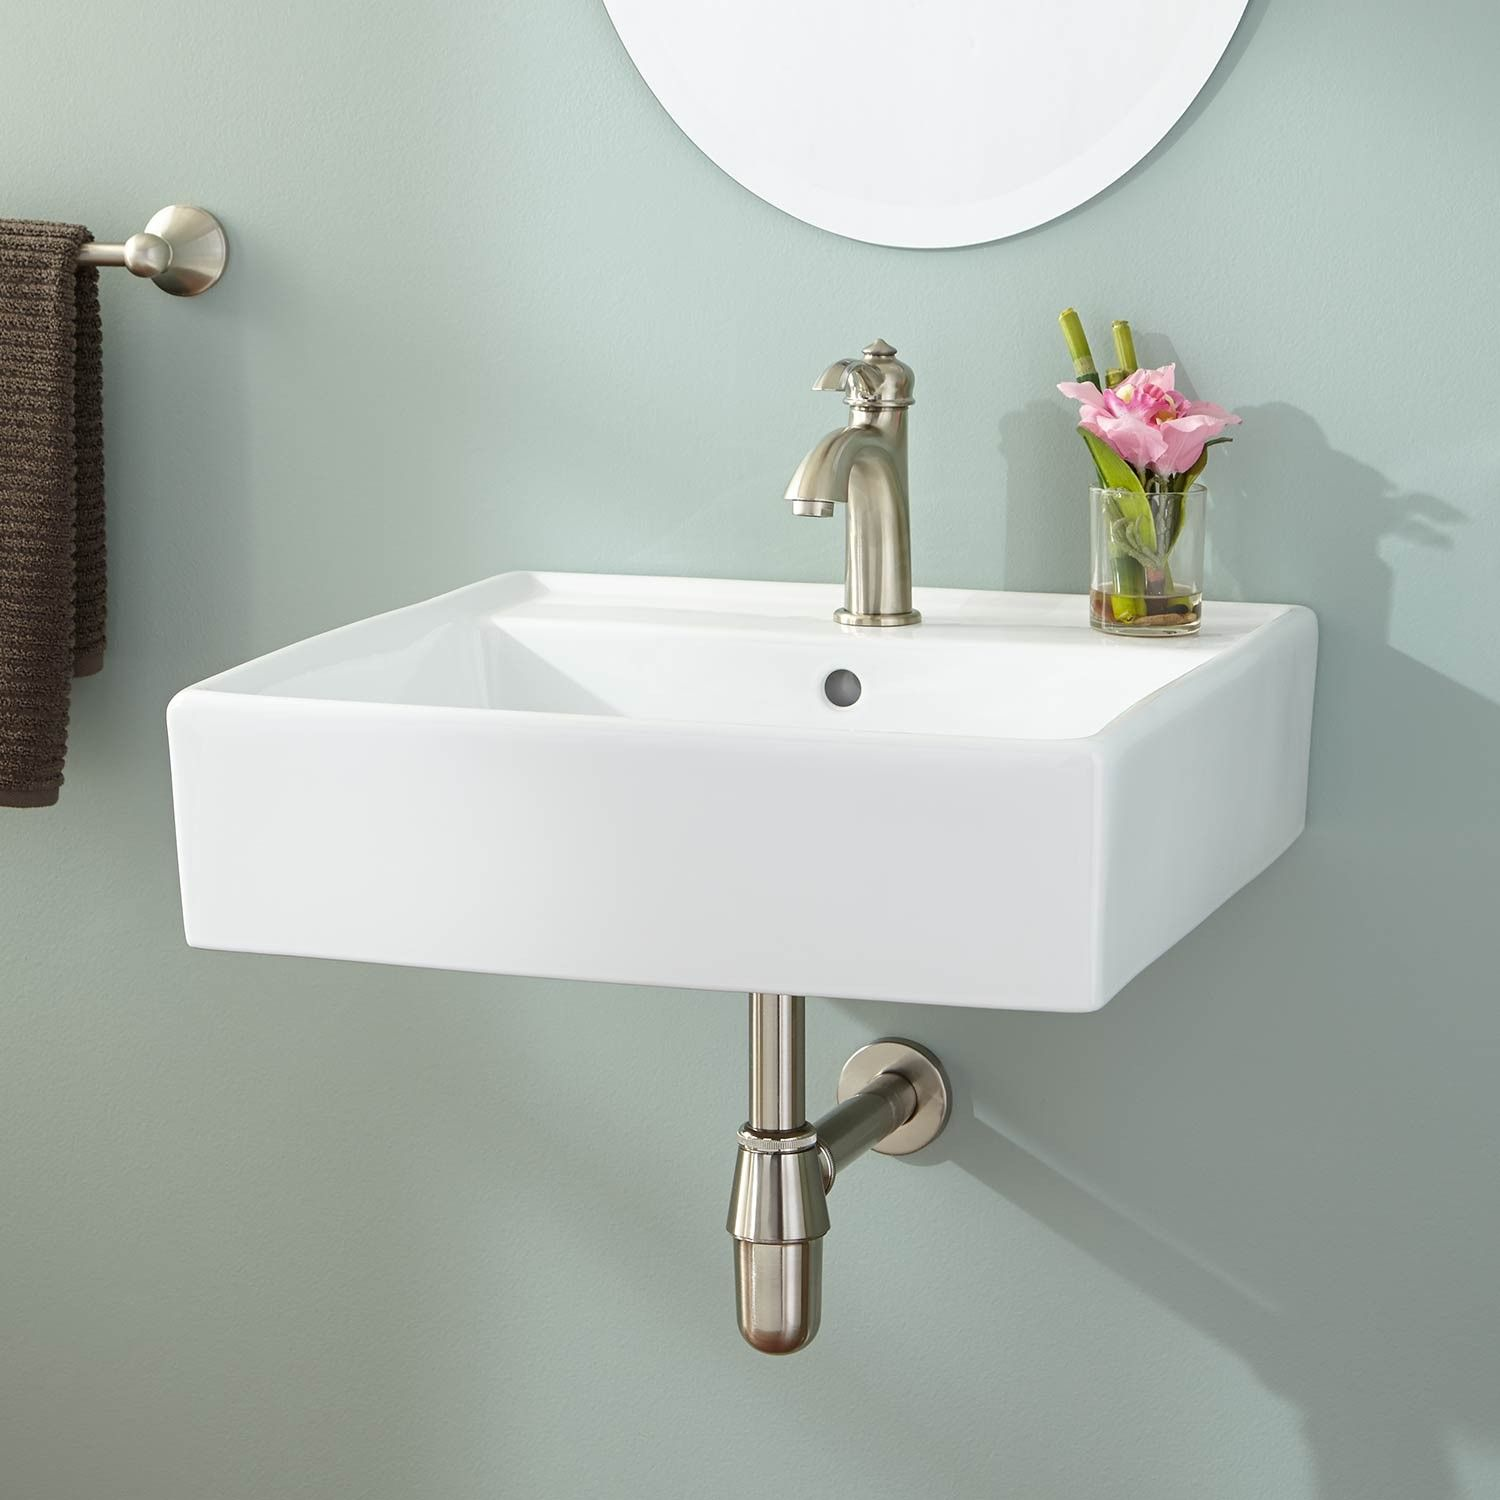 Wall Mount Sinks Mounted Bathroom Signature Hardware Regarding